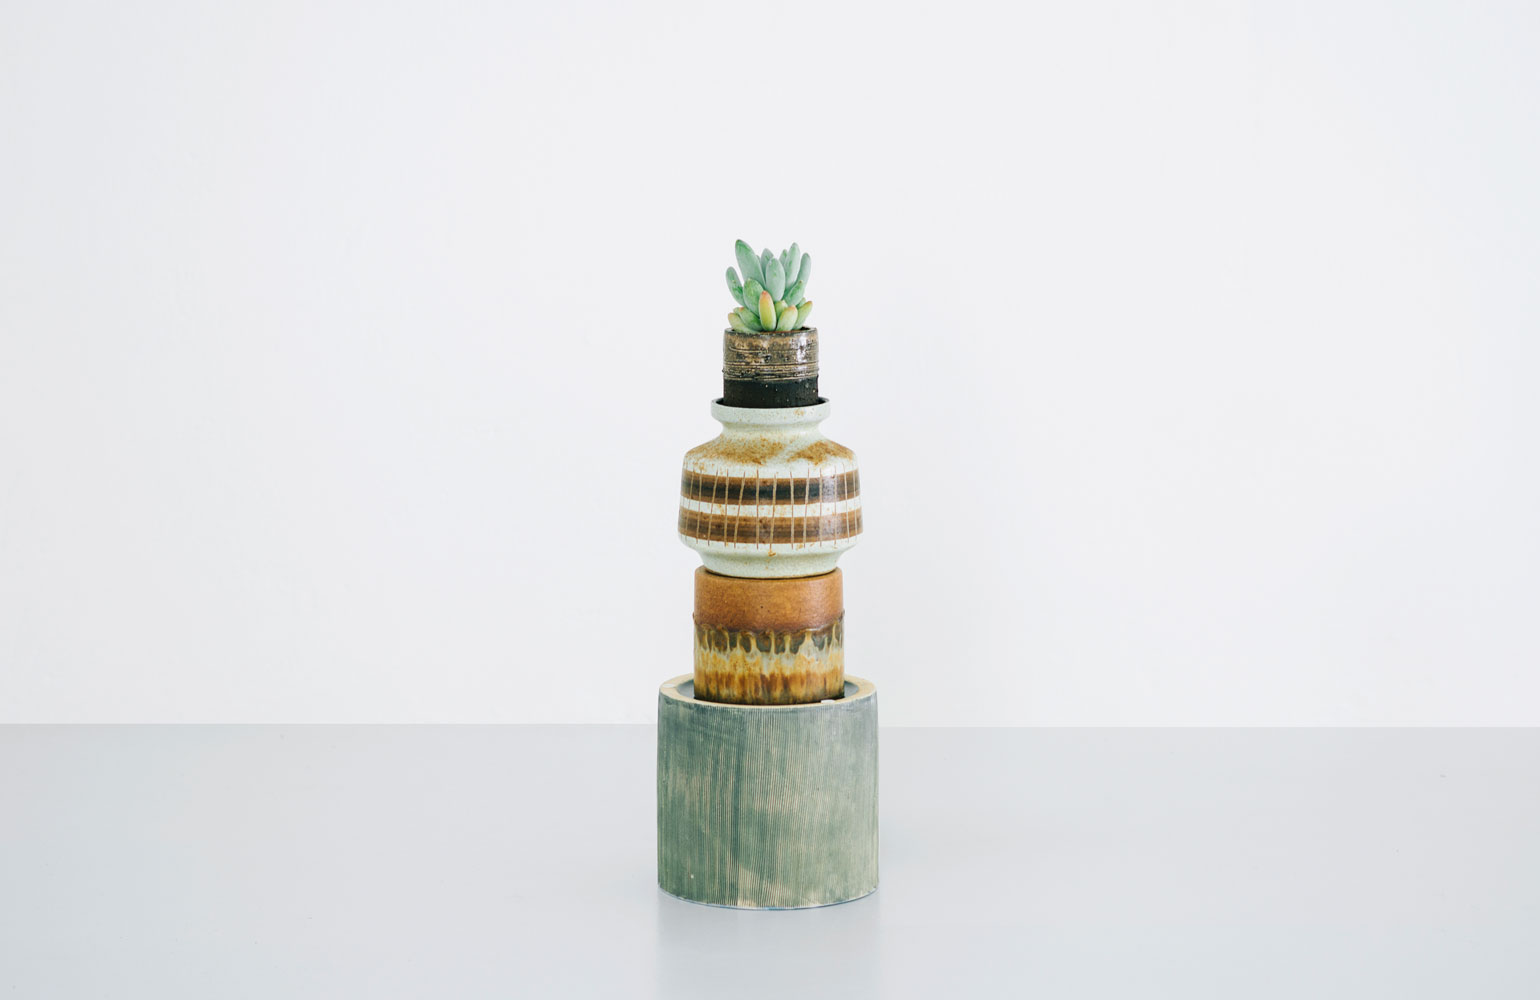 kaktus store, cactus shop by chiara stella home8